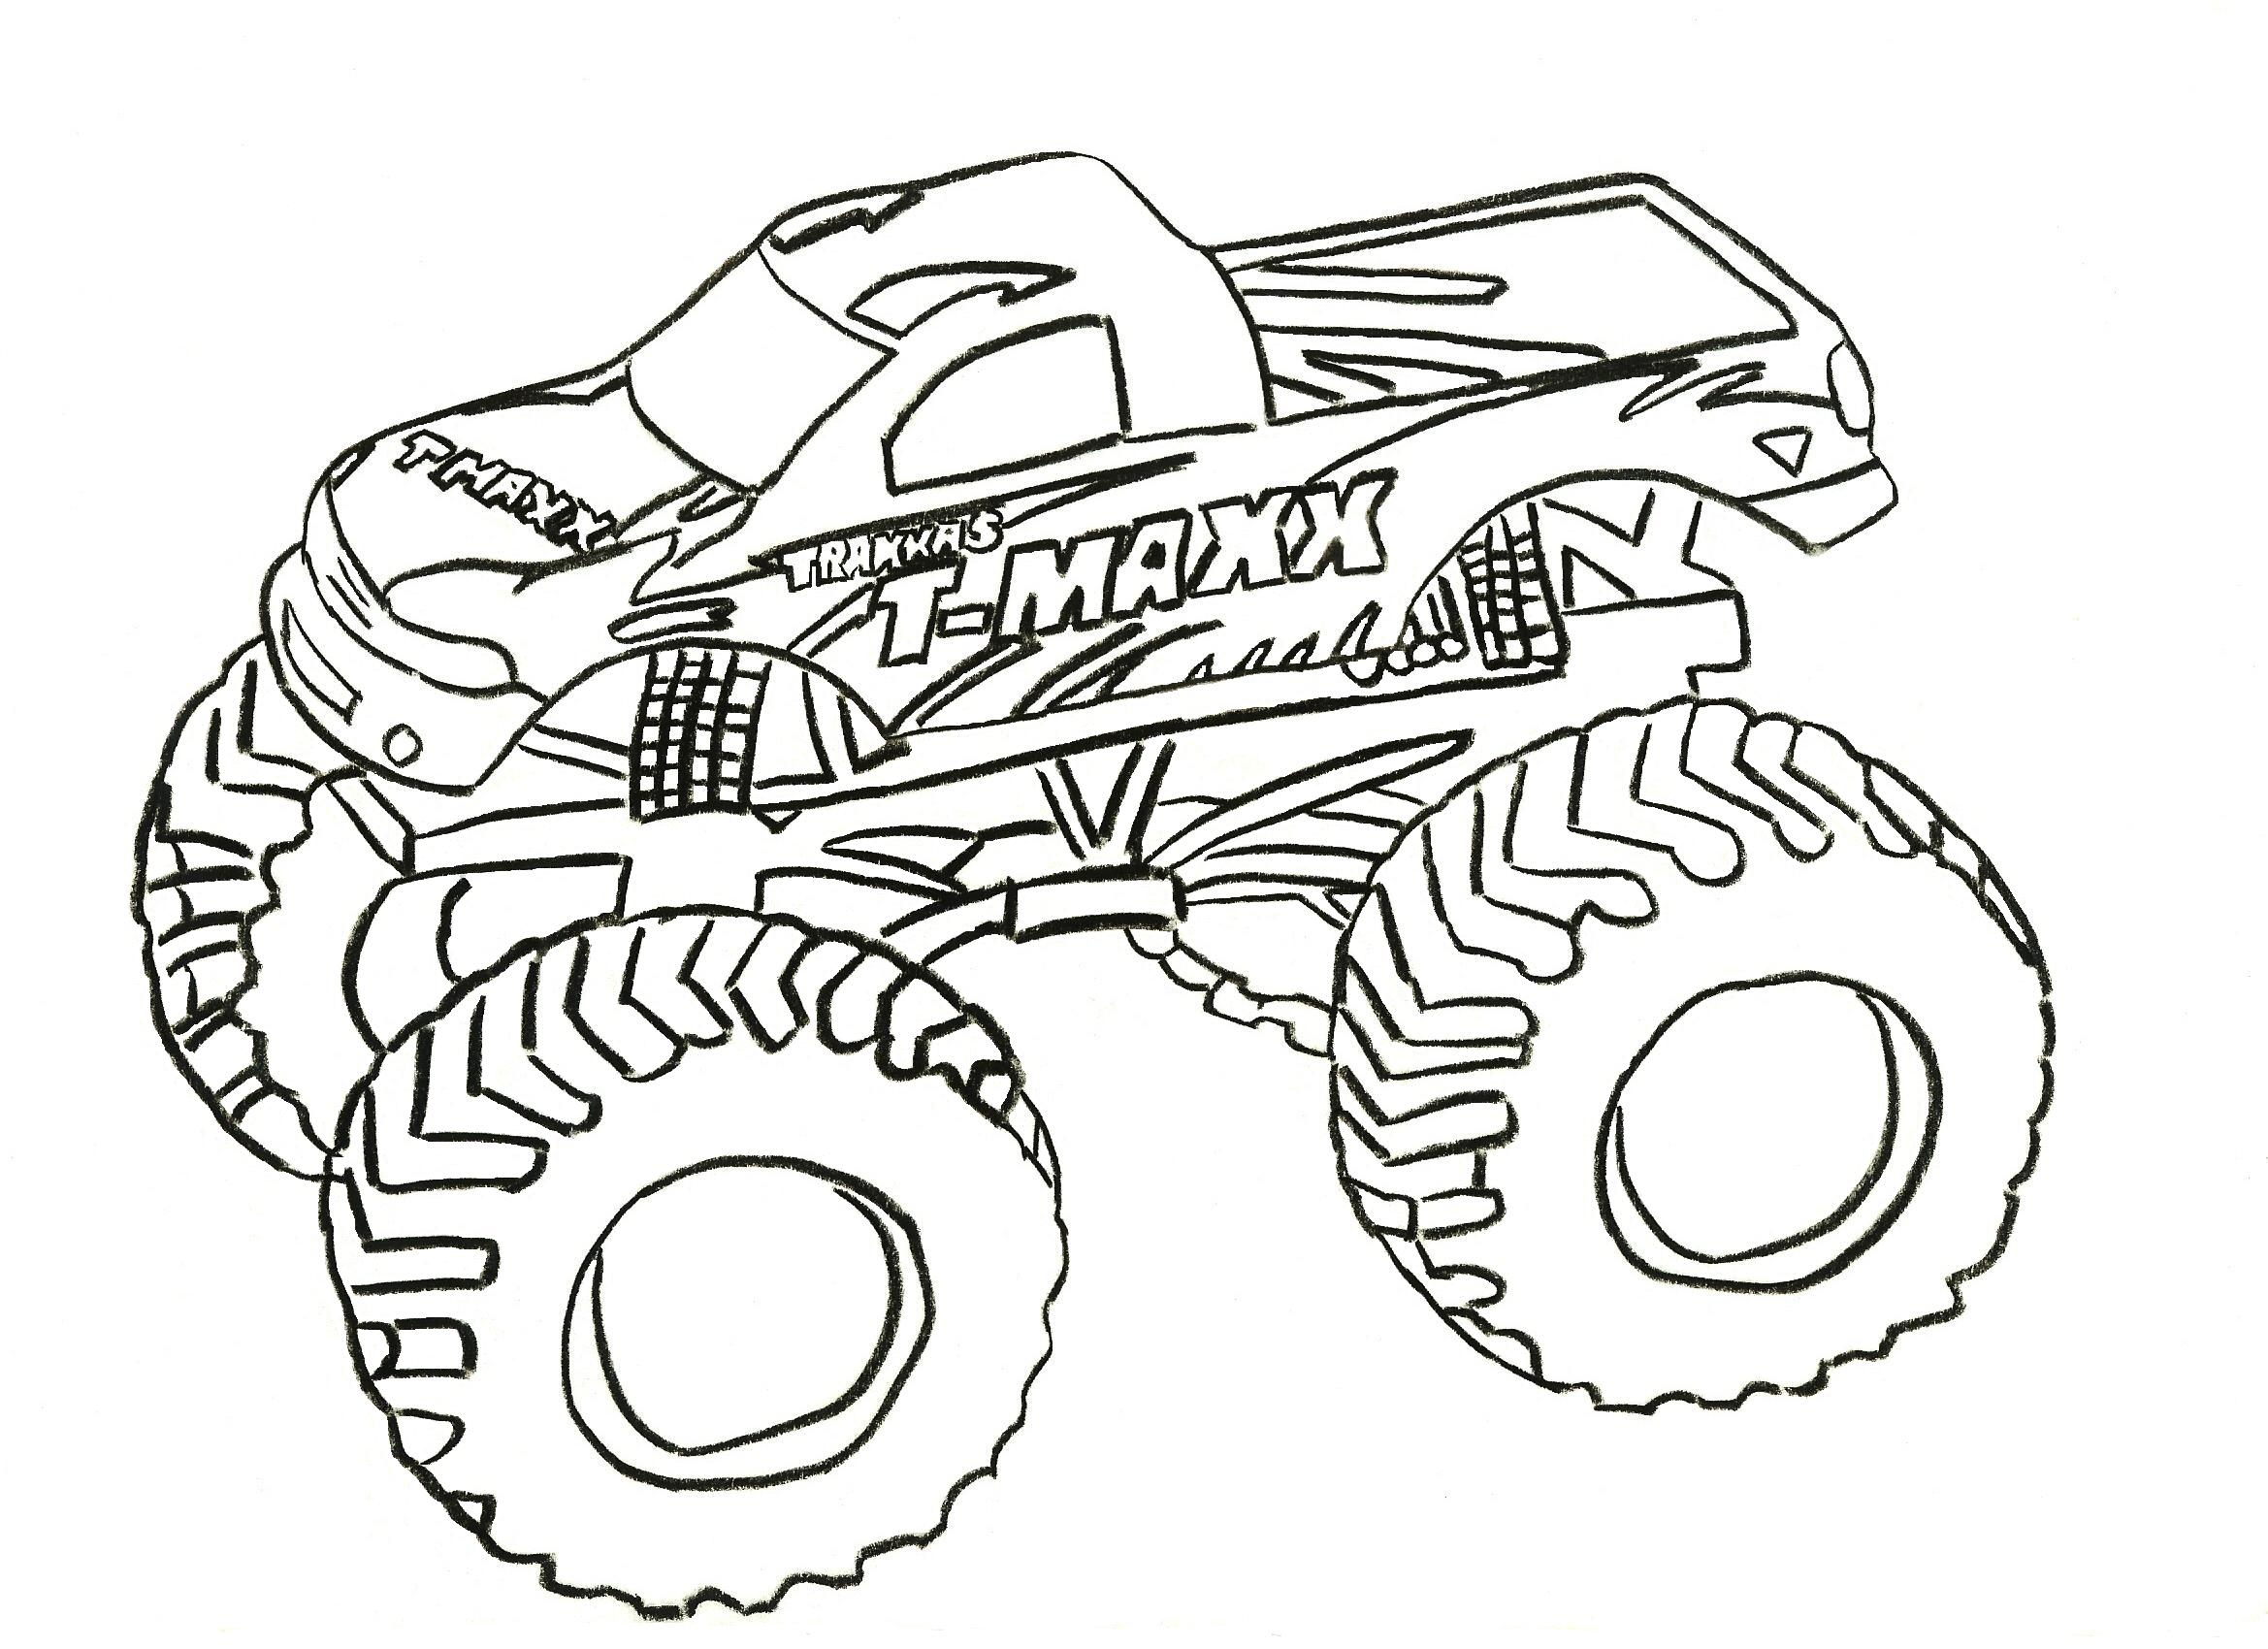 easter coloring pages to print - monster truck coloring pages letscoloringpages t maxx printable coloring pages